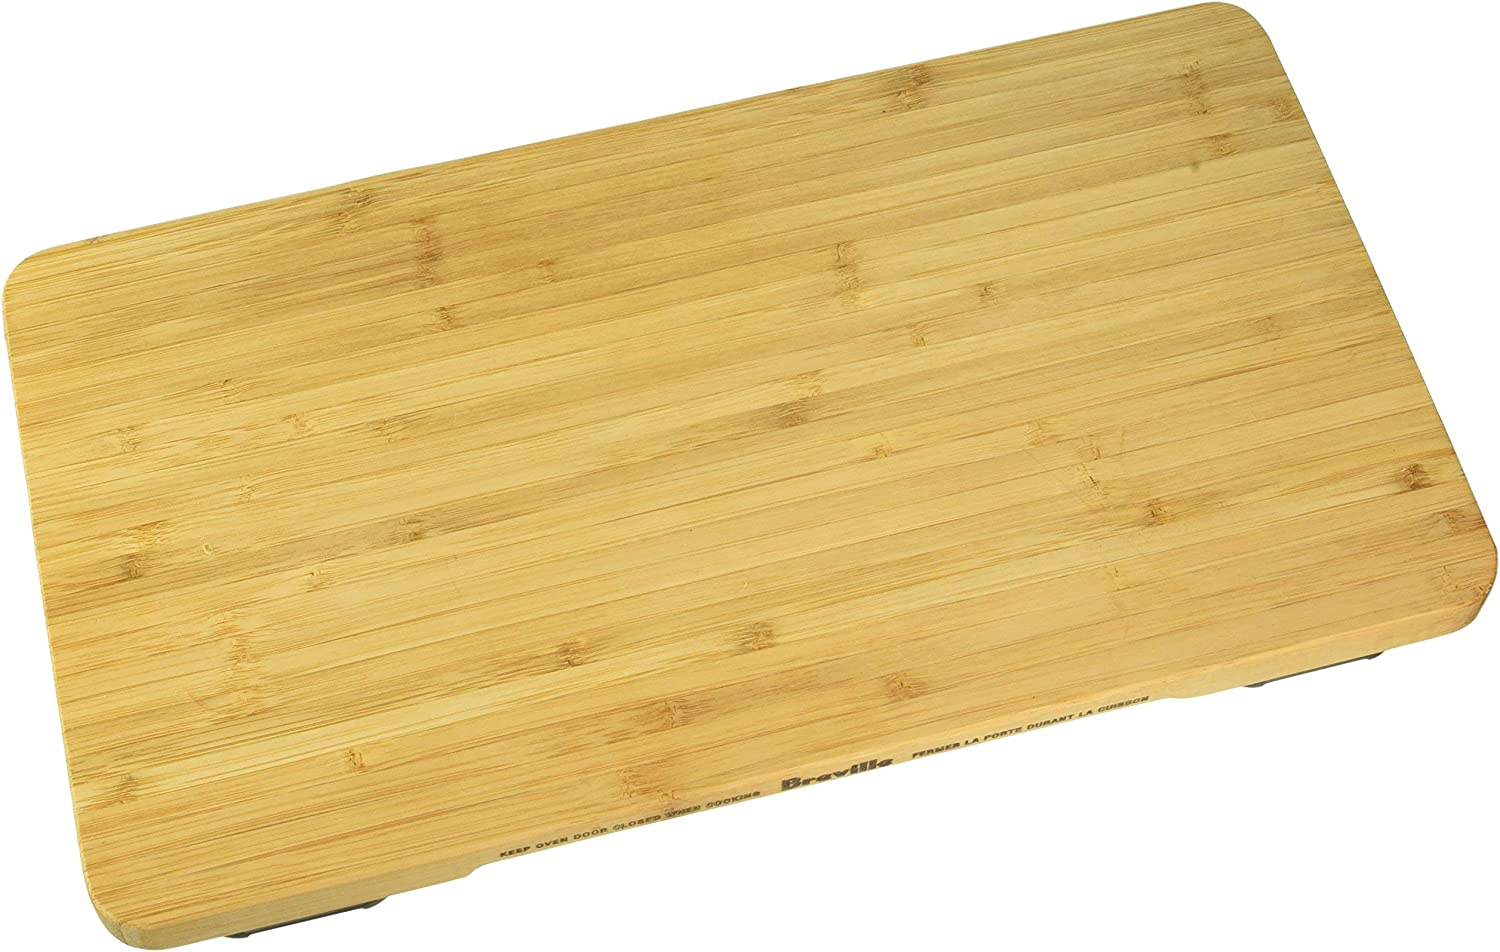 Breville BOV650CB Bamboo Cutting Board for use with BOV650XL Compact Smart Oven (Renewed)